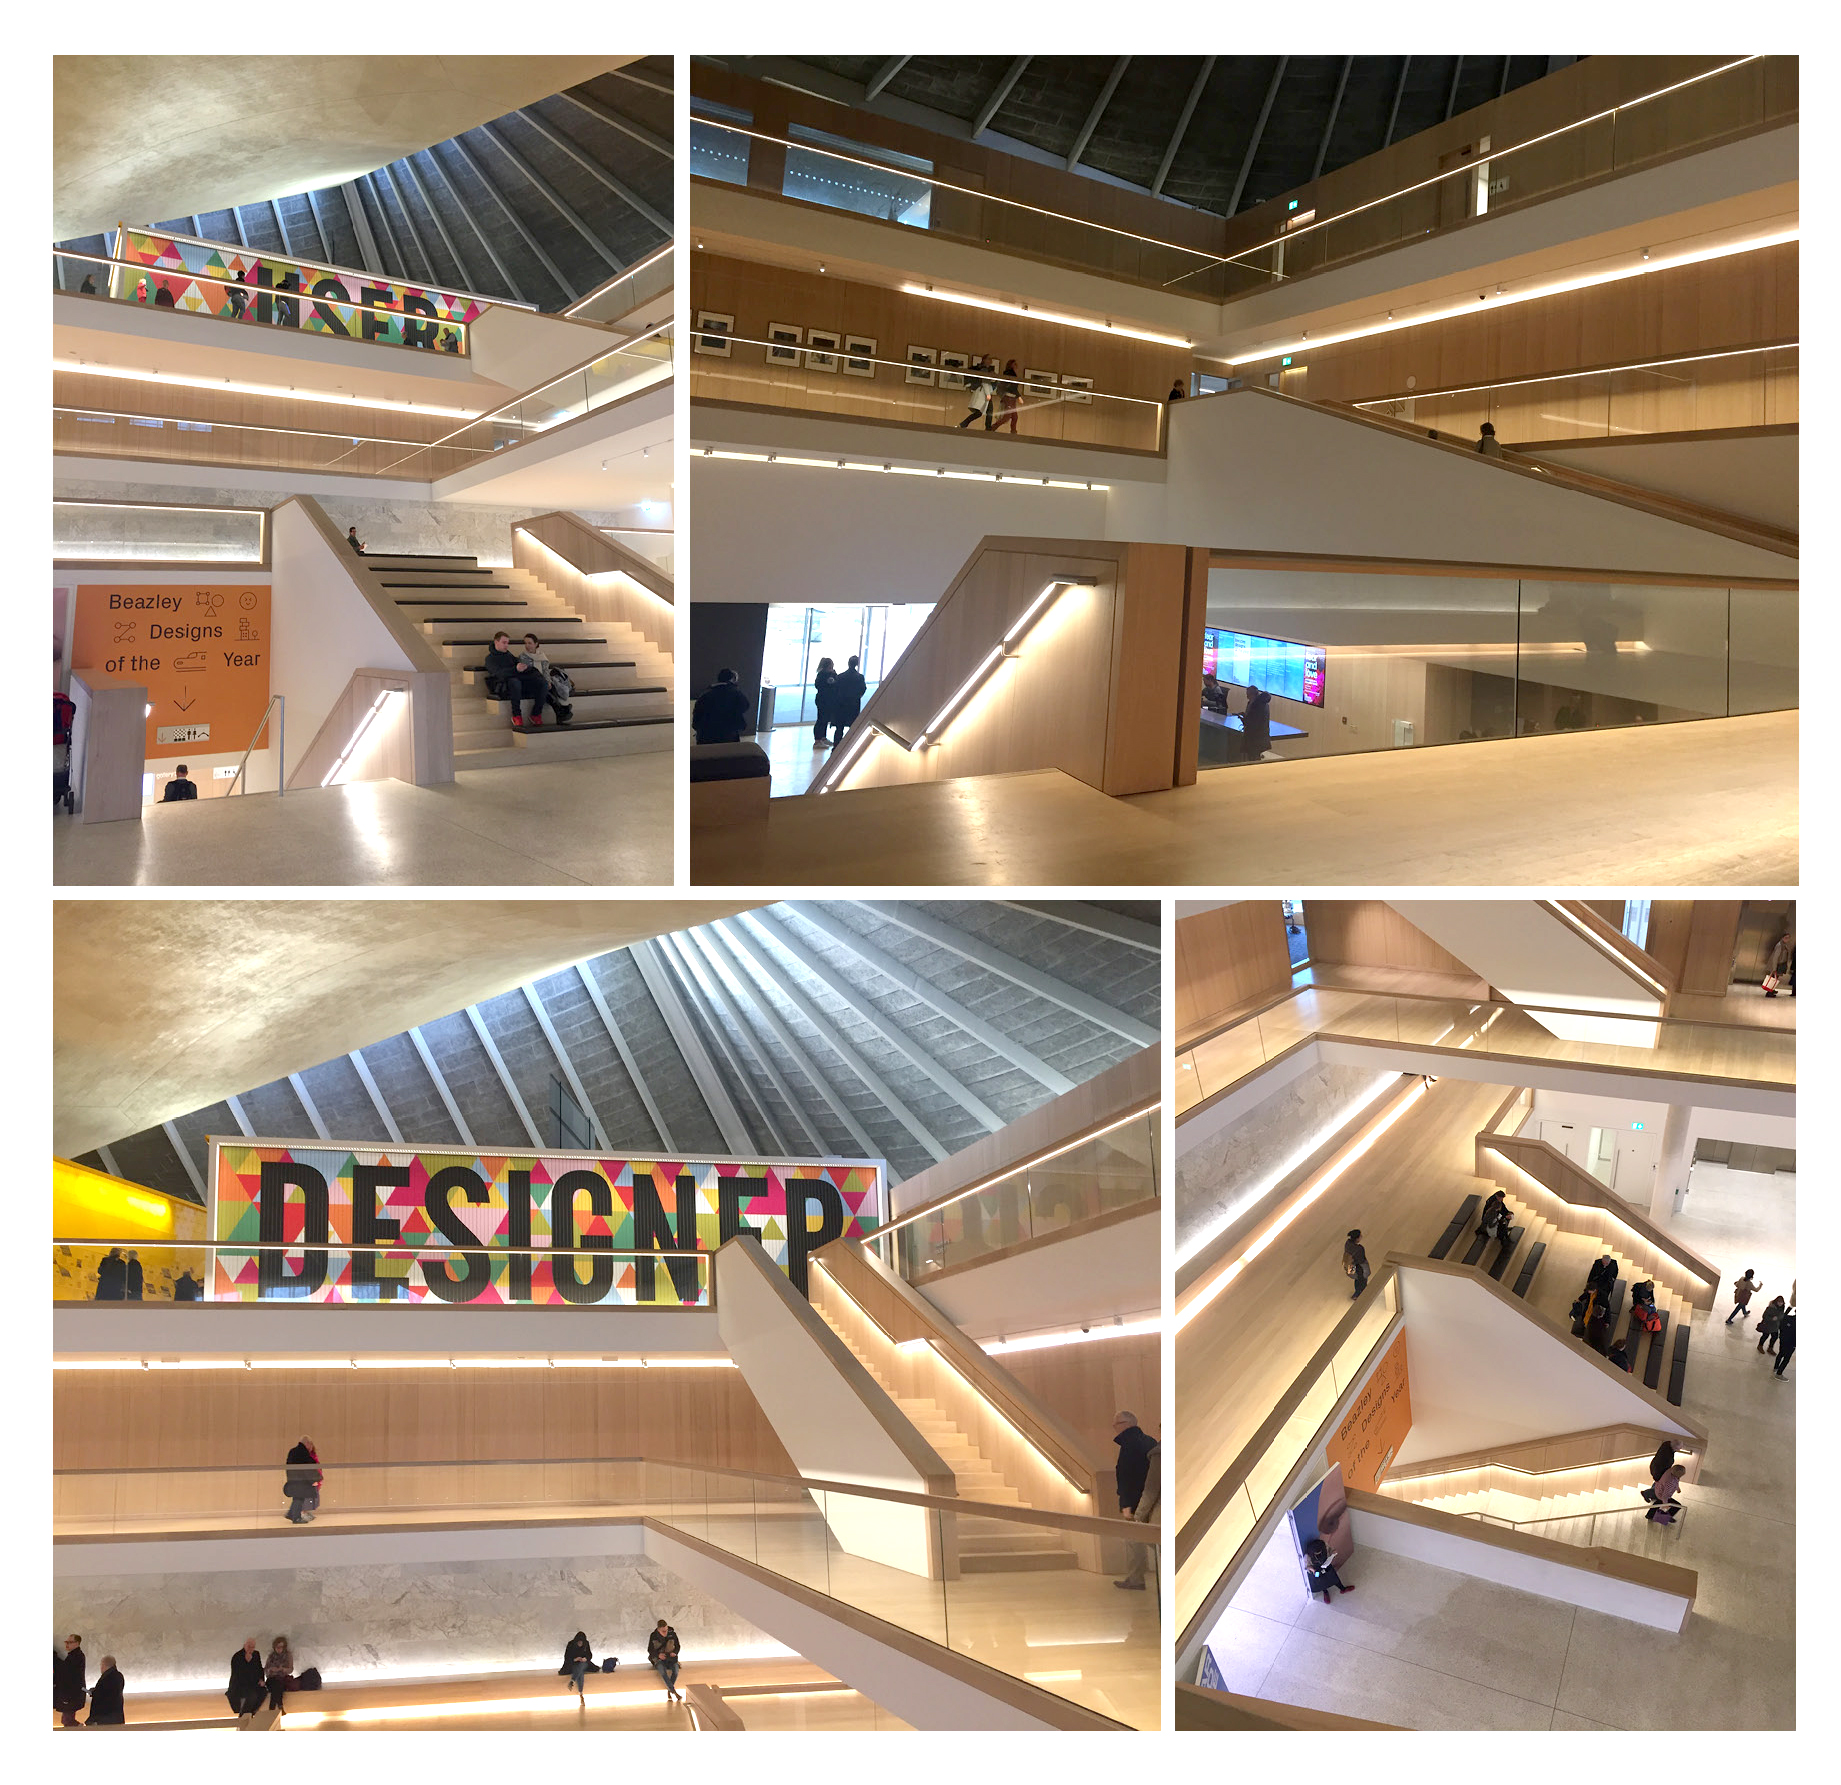 Interior shots of the musem